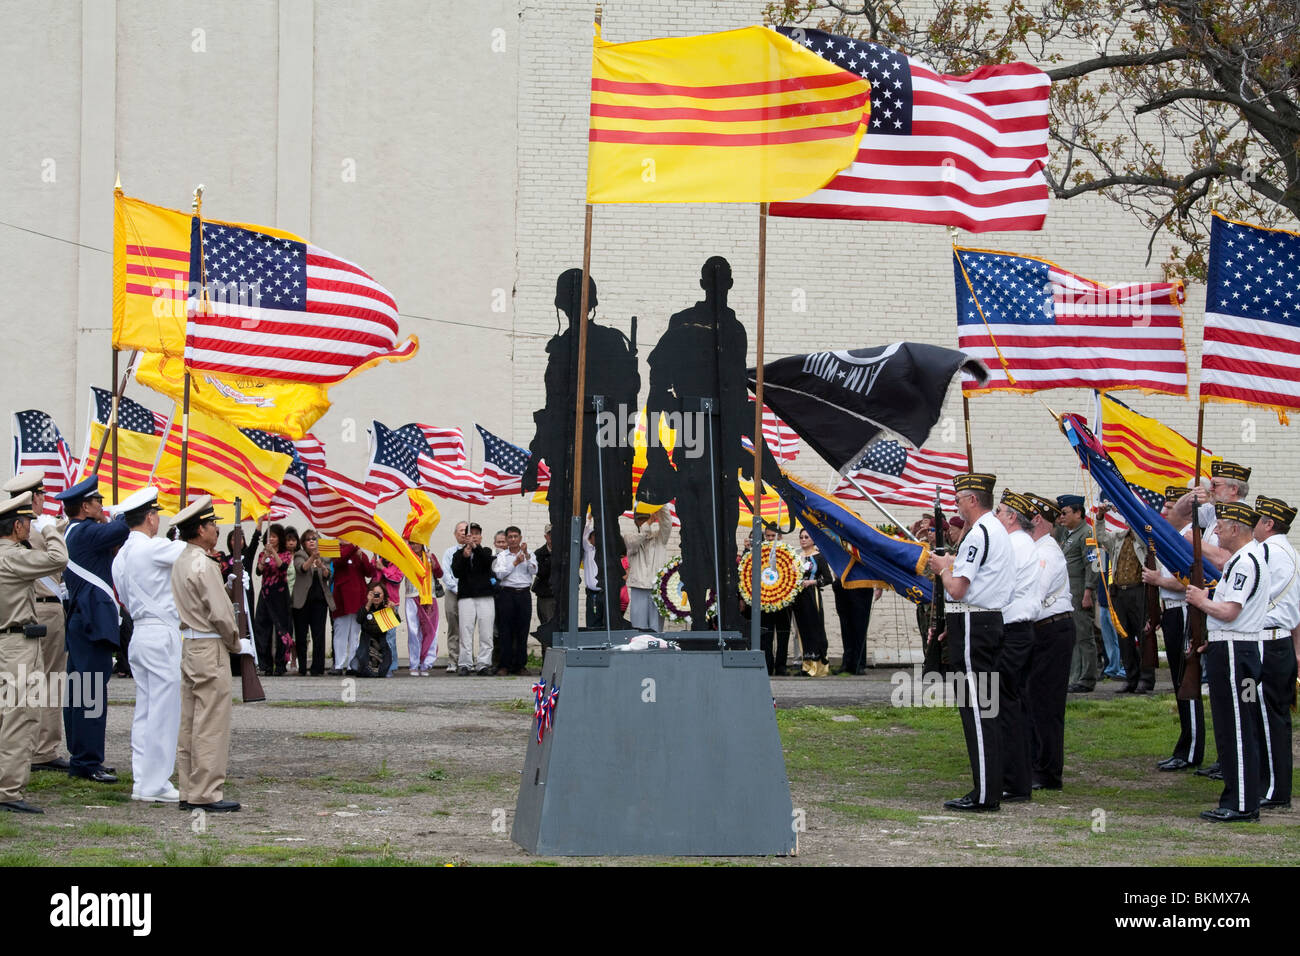 Vietnamese and Americans Mark 35th Anniversary of the Fall of Saigon - Stock Image